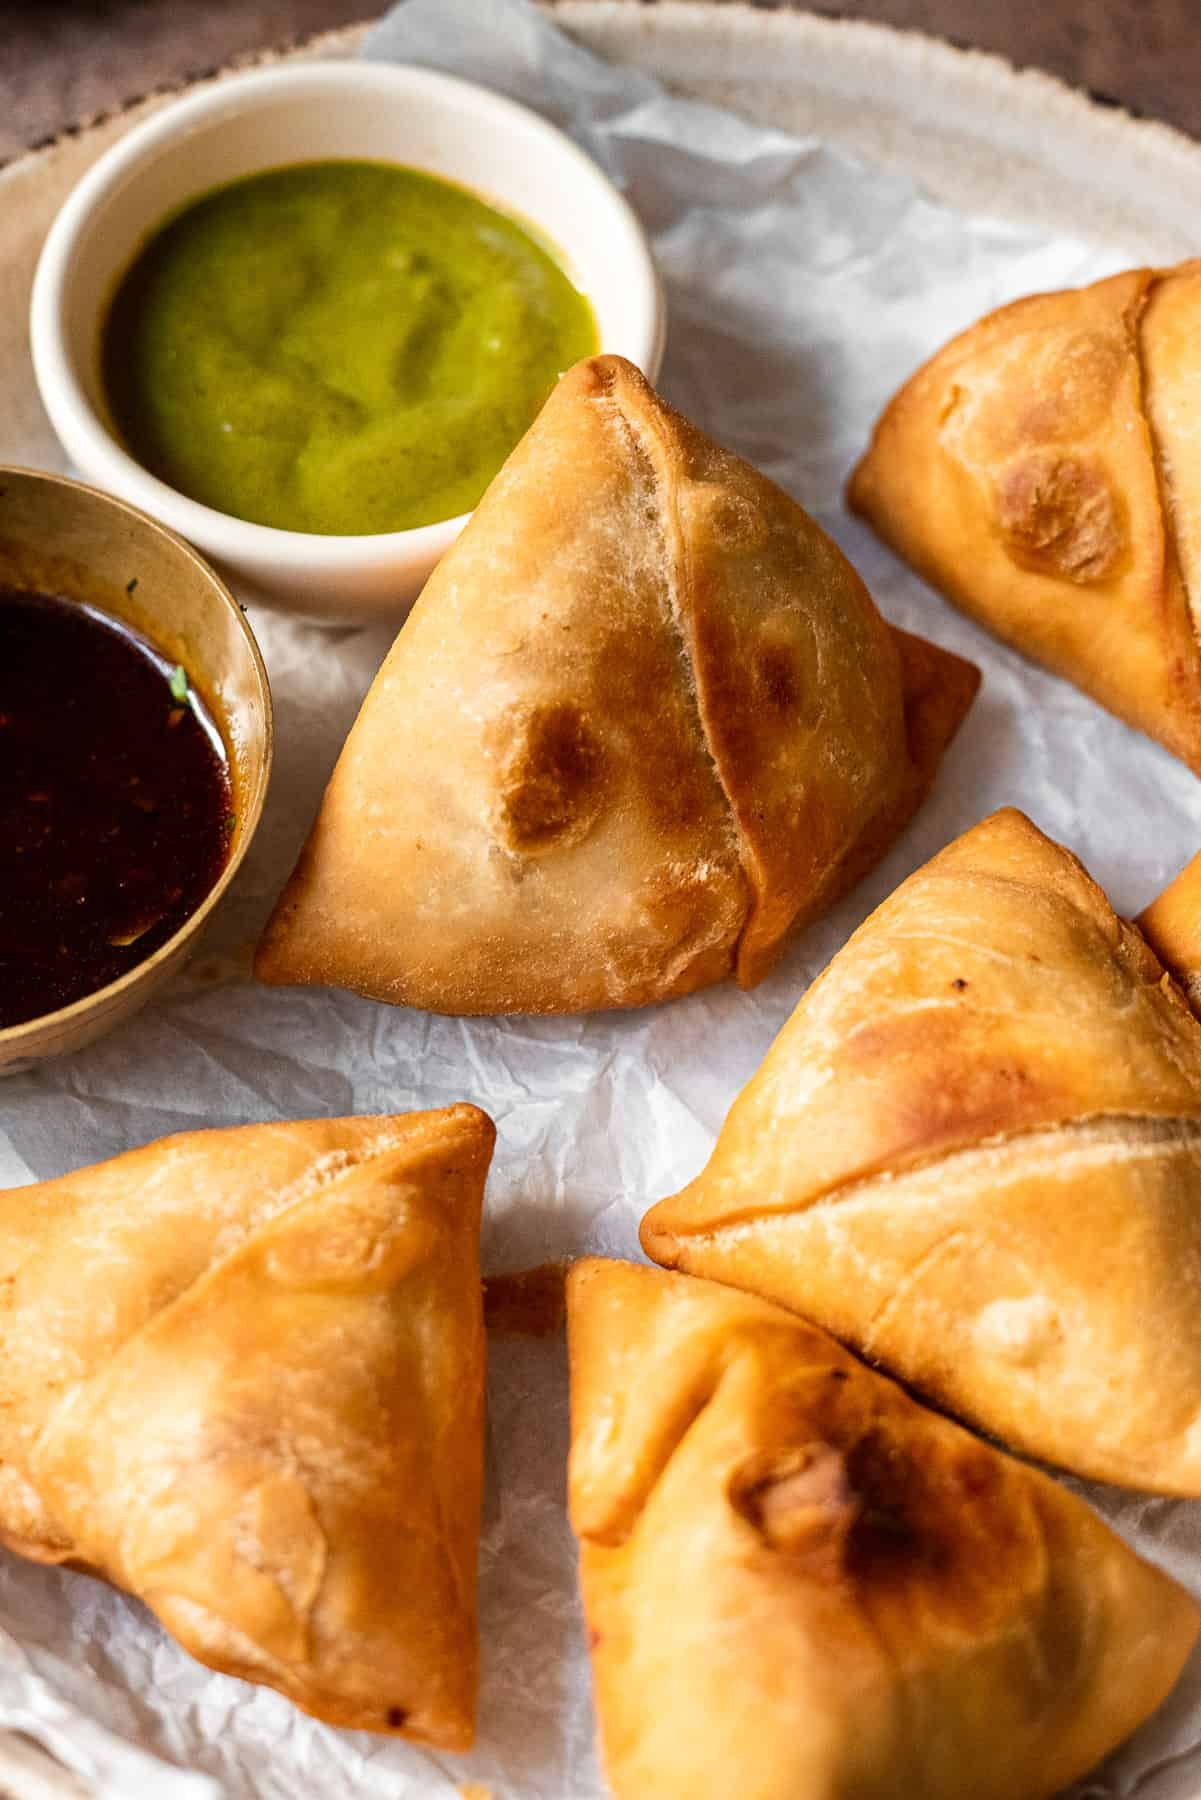 samosa in a plate propped up against chutneys